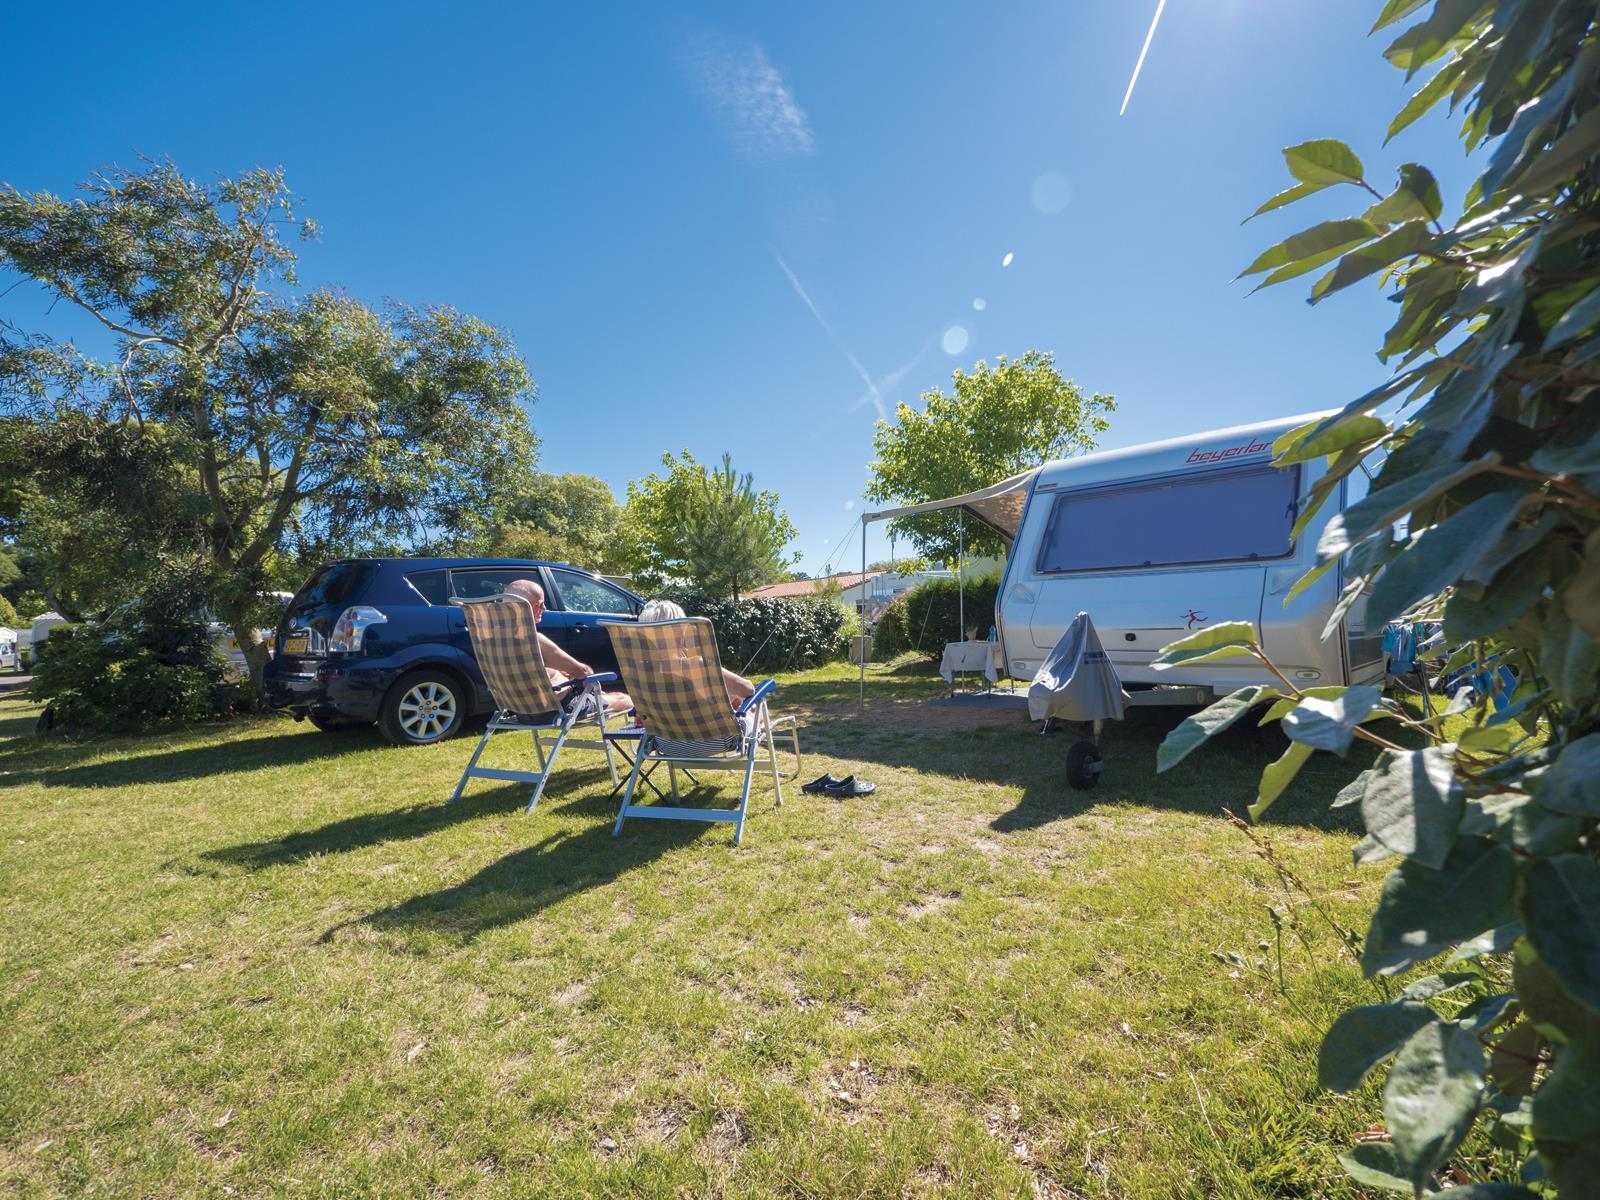 Emplacement - Forfait Emplacement **** - Camping Sandaya Le Littoral